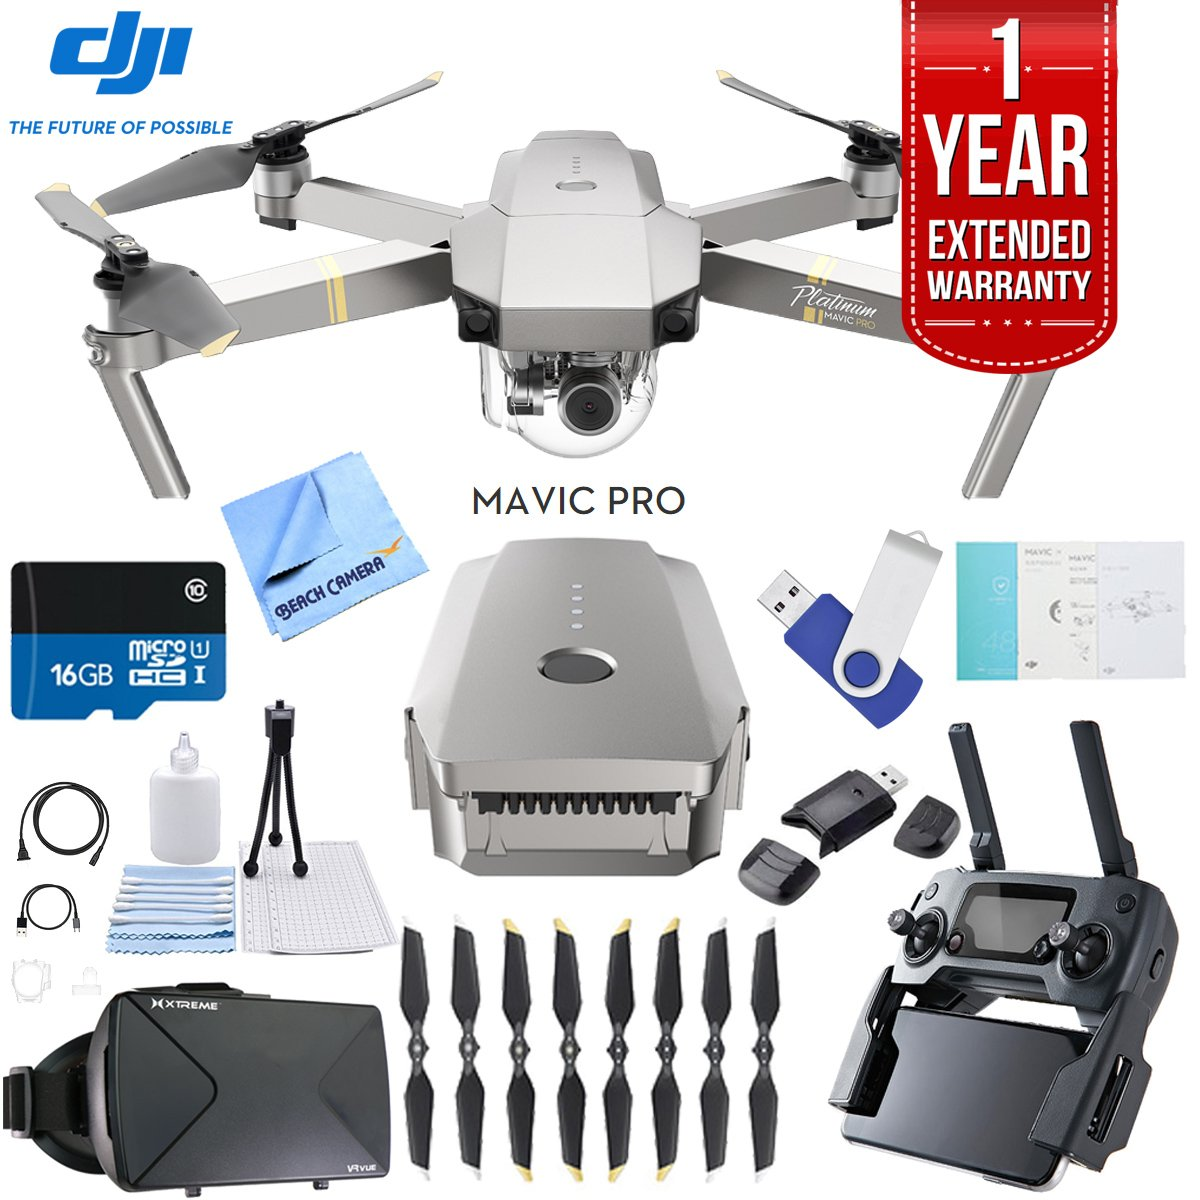 DJI Mavic Pro Platinum Quadcopter Drone with 1 Year Extended Warranty Plus 16GB Flash Drive, Virtual Reality Viewer, and MicroSD Card Reader Bundle